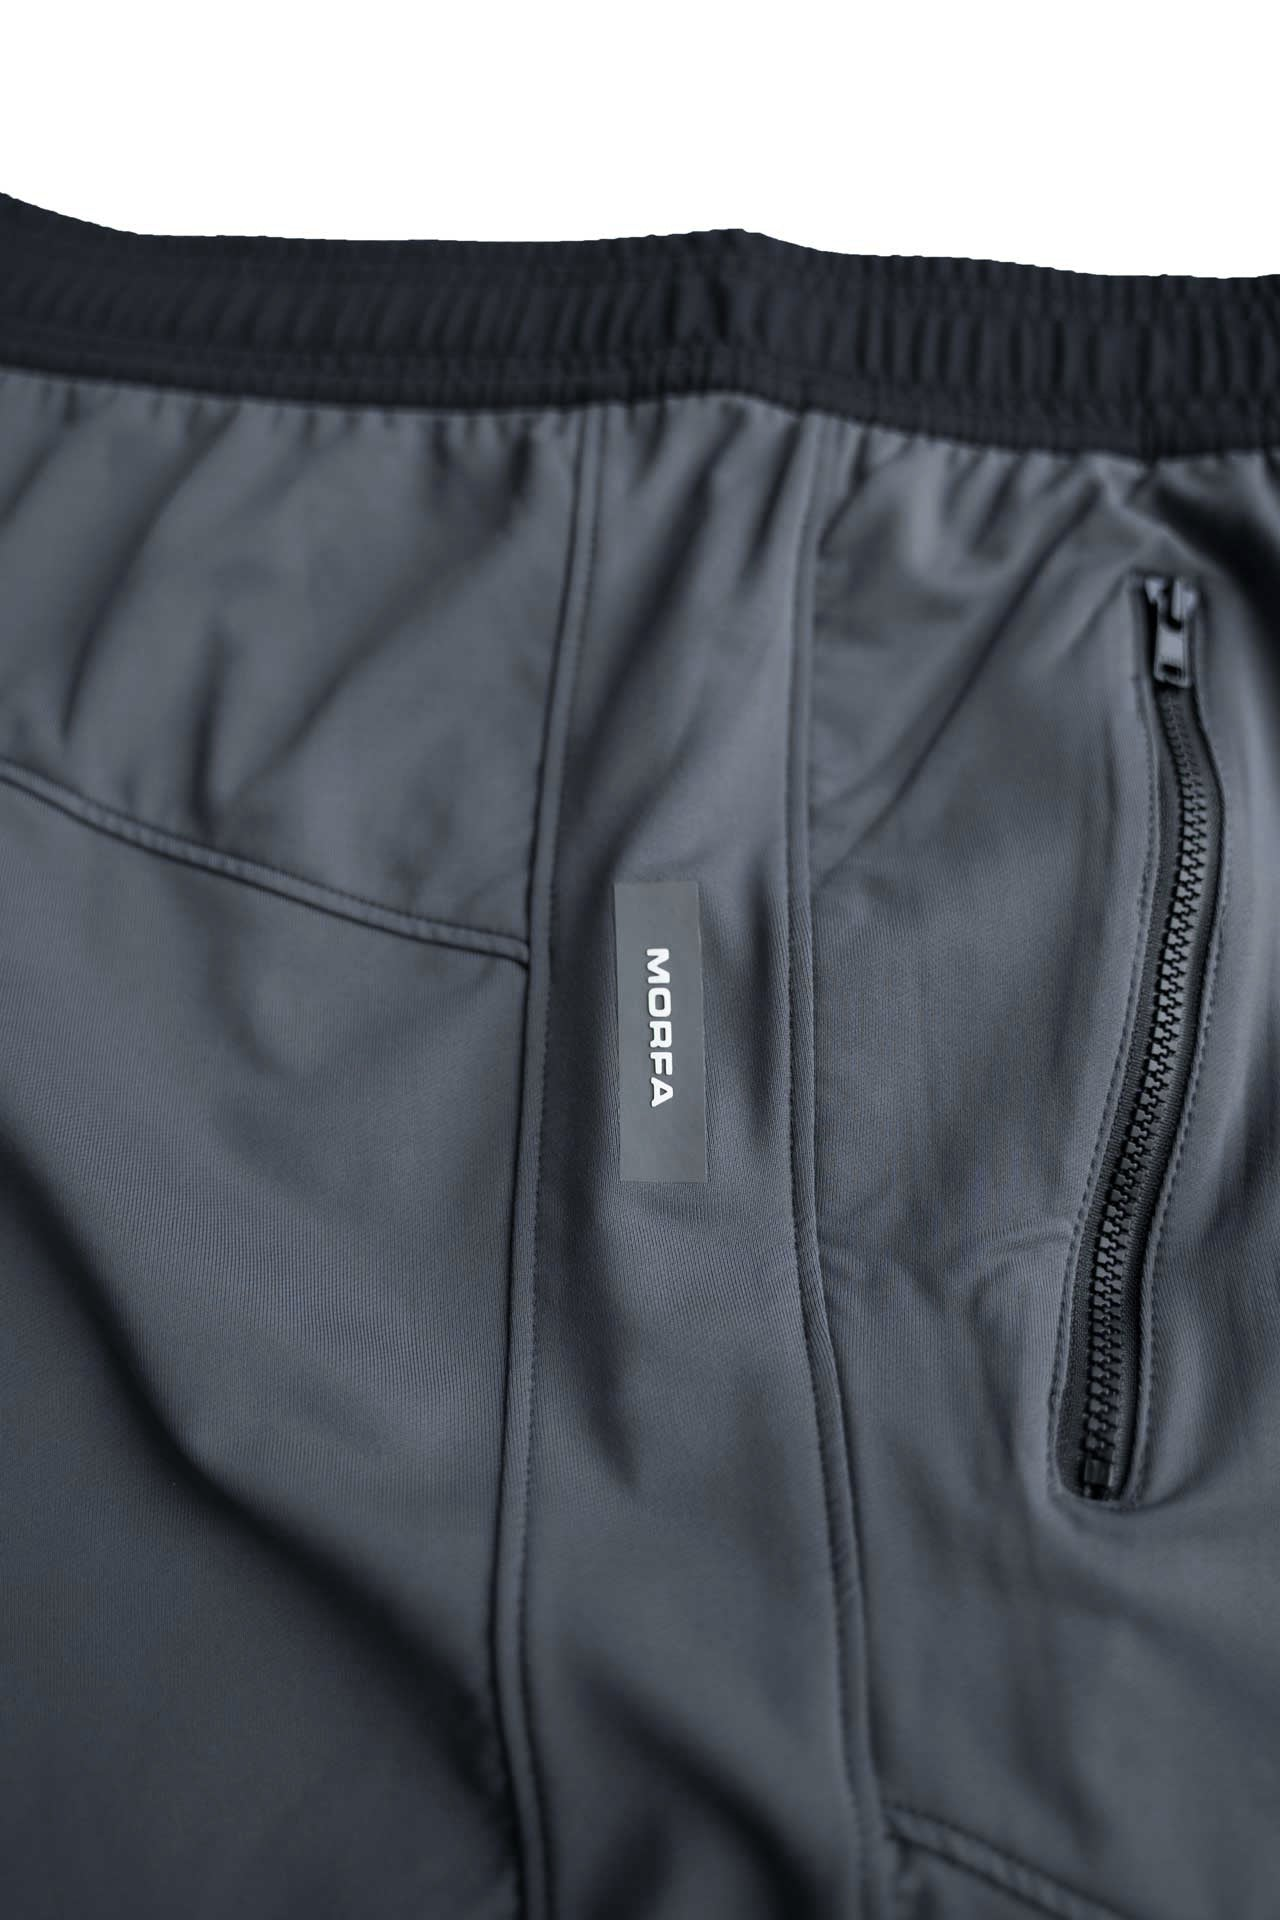 LIGHTWEIGHT -TECH STRETCH TRAINING SHORTS - GREY / BLACK